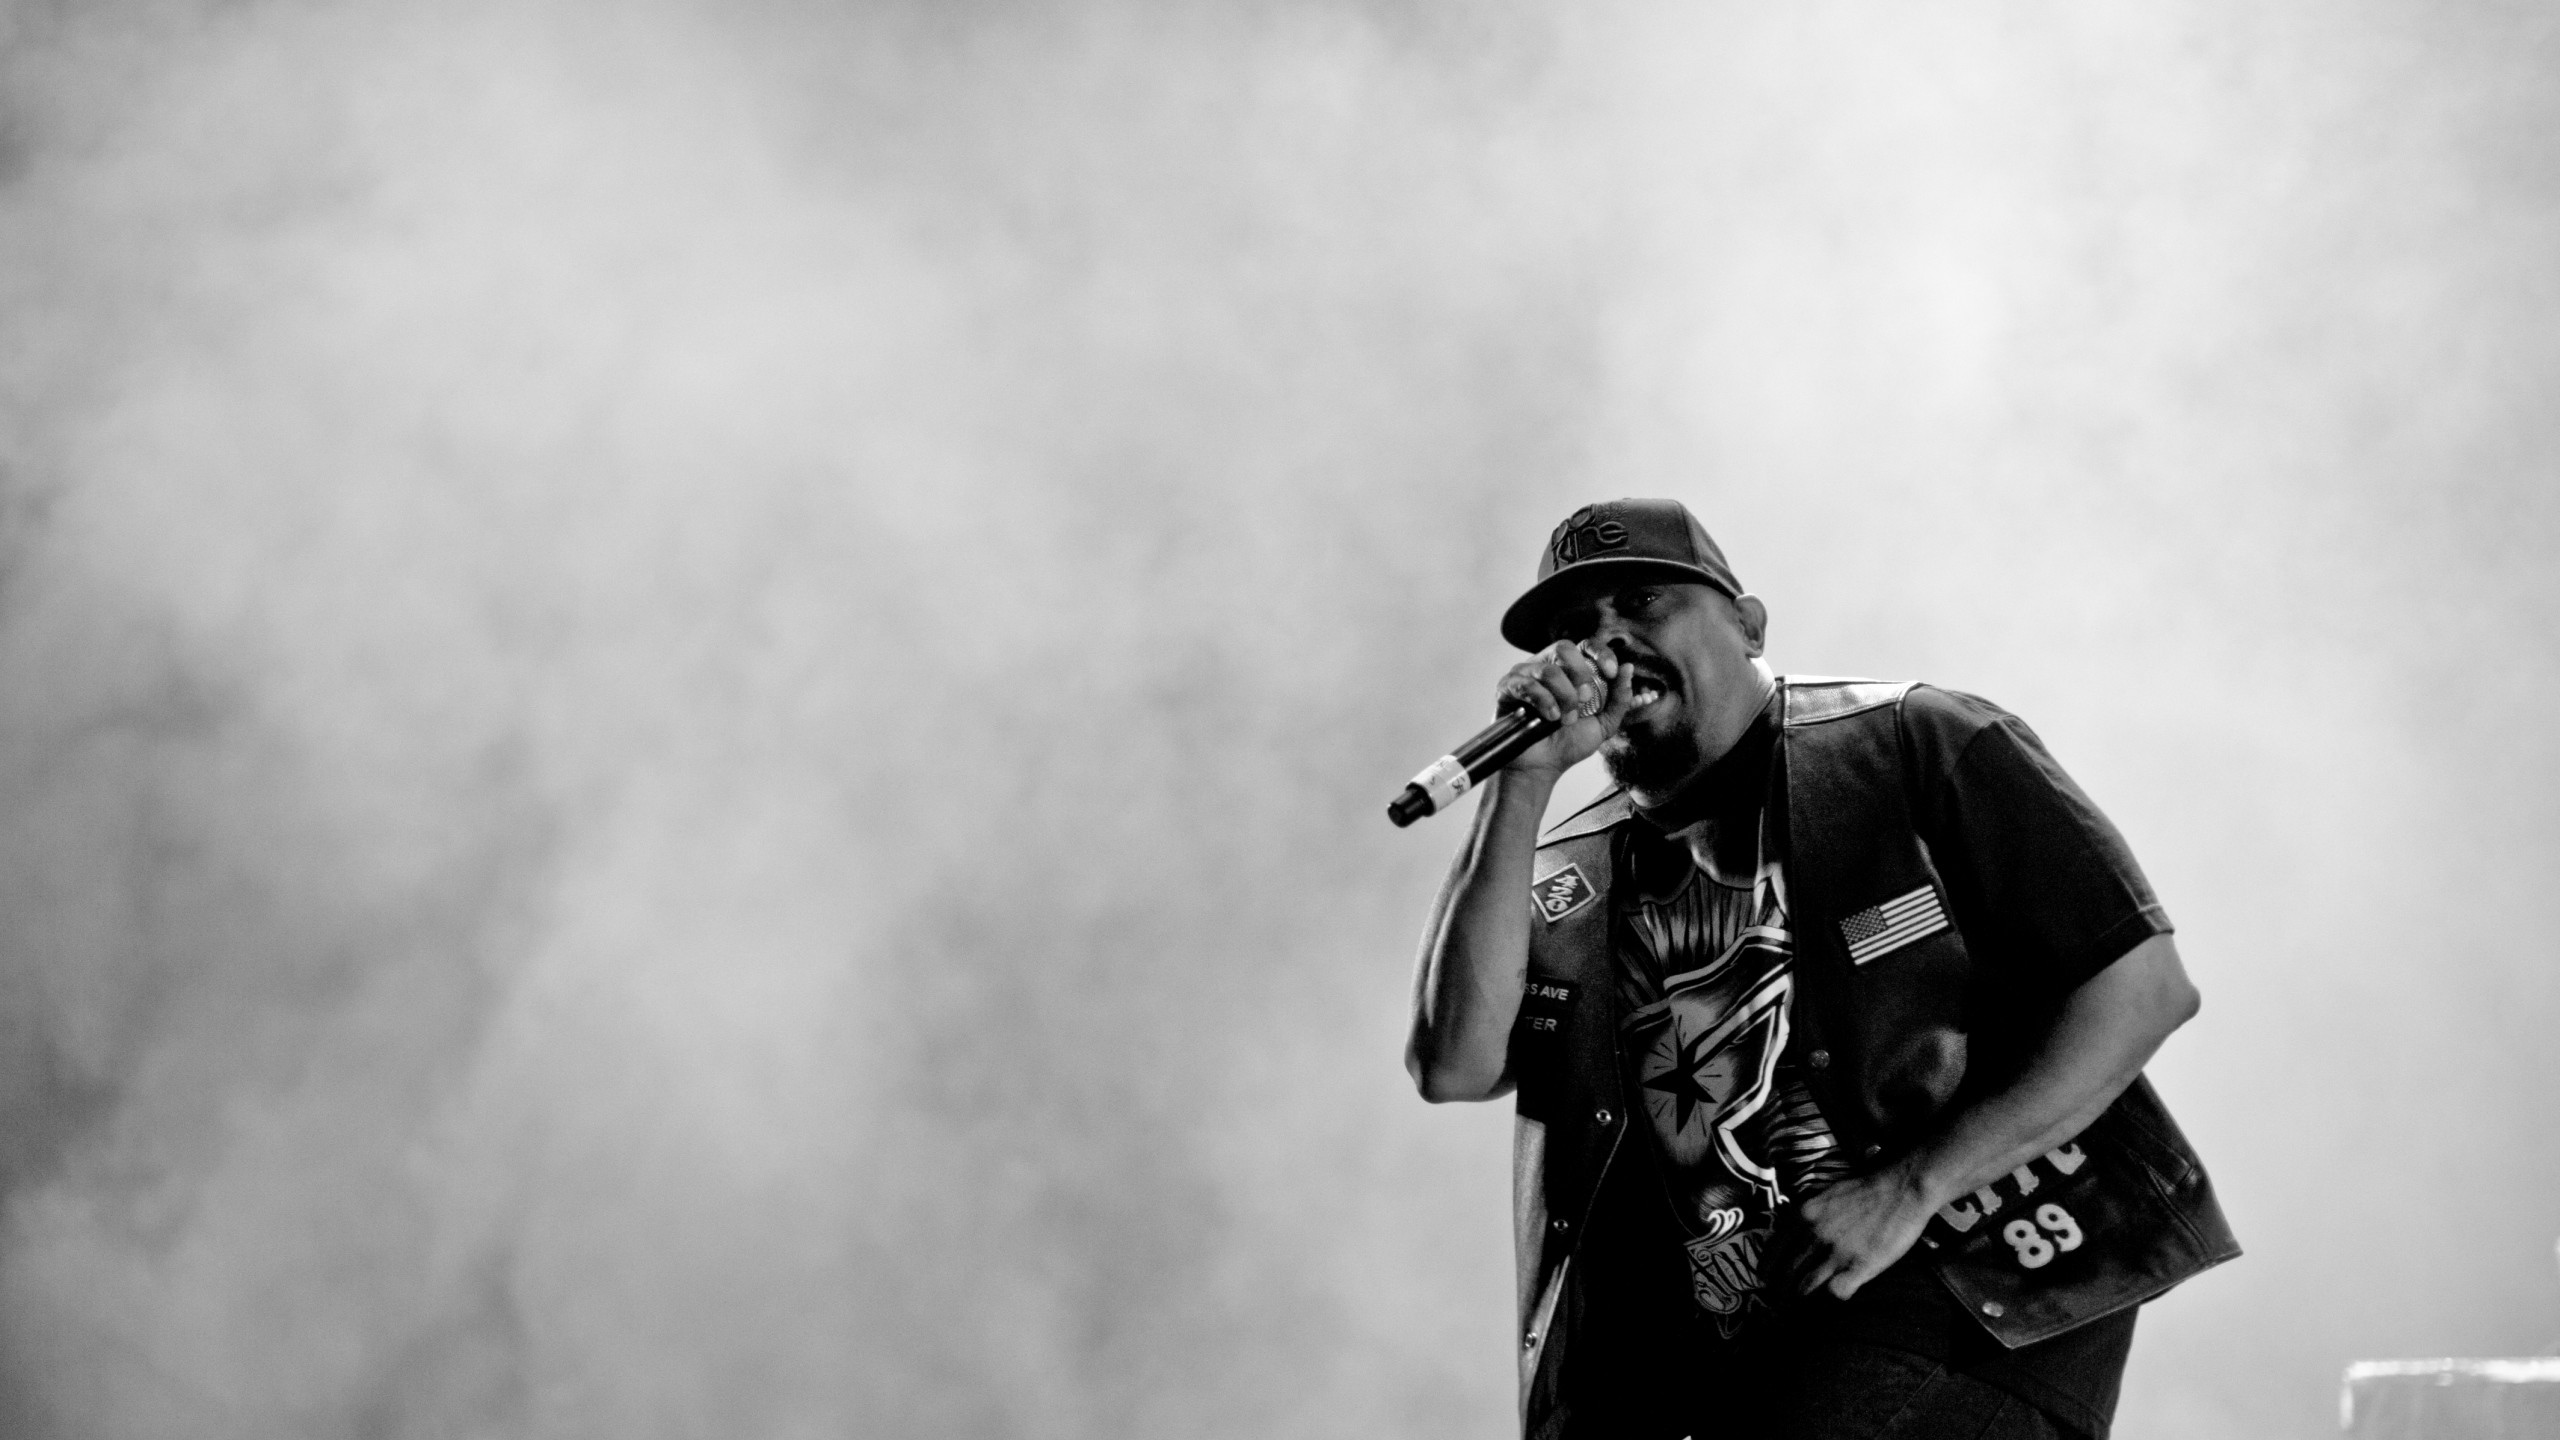 2560x1440 Preview wallpaper cypress hill, music, rap, hip-hop, bw, performance